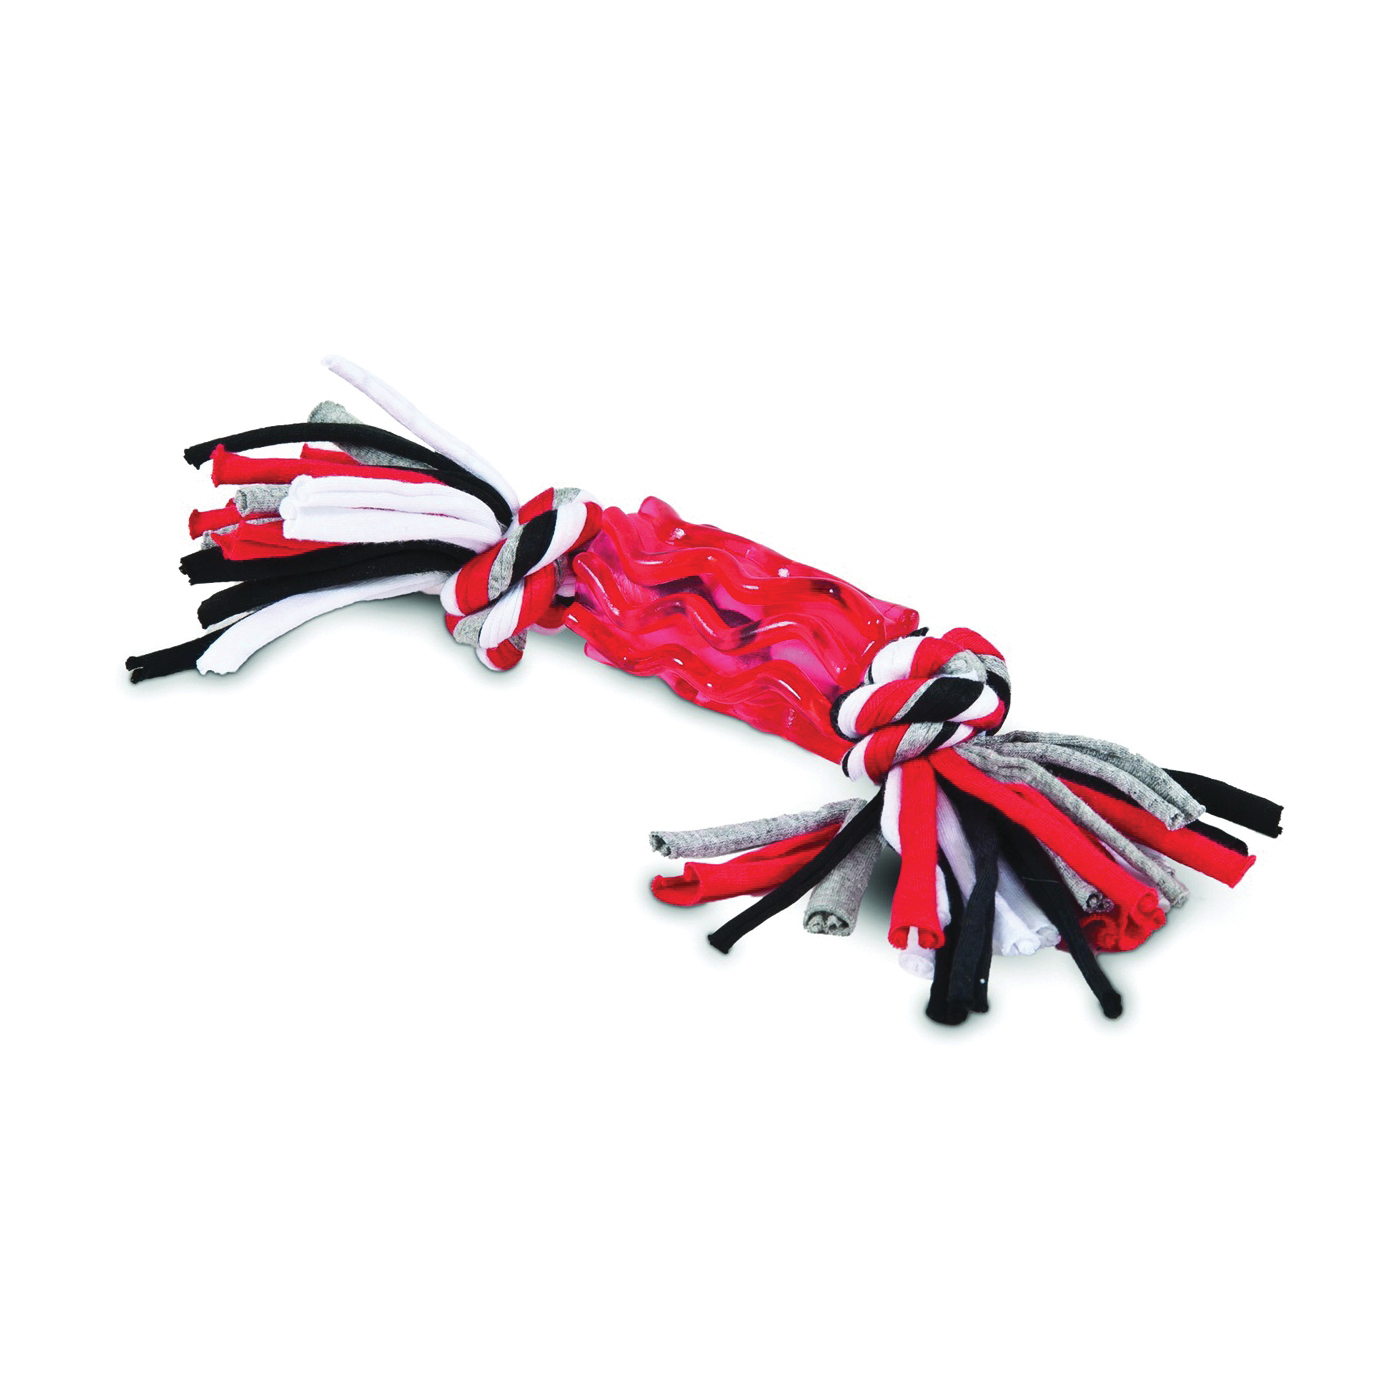 Picture of DOGZILLA 30891 Dog Toy, M, Snarl Tug Toy, Black/Red